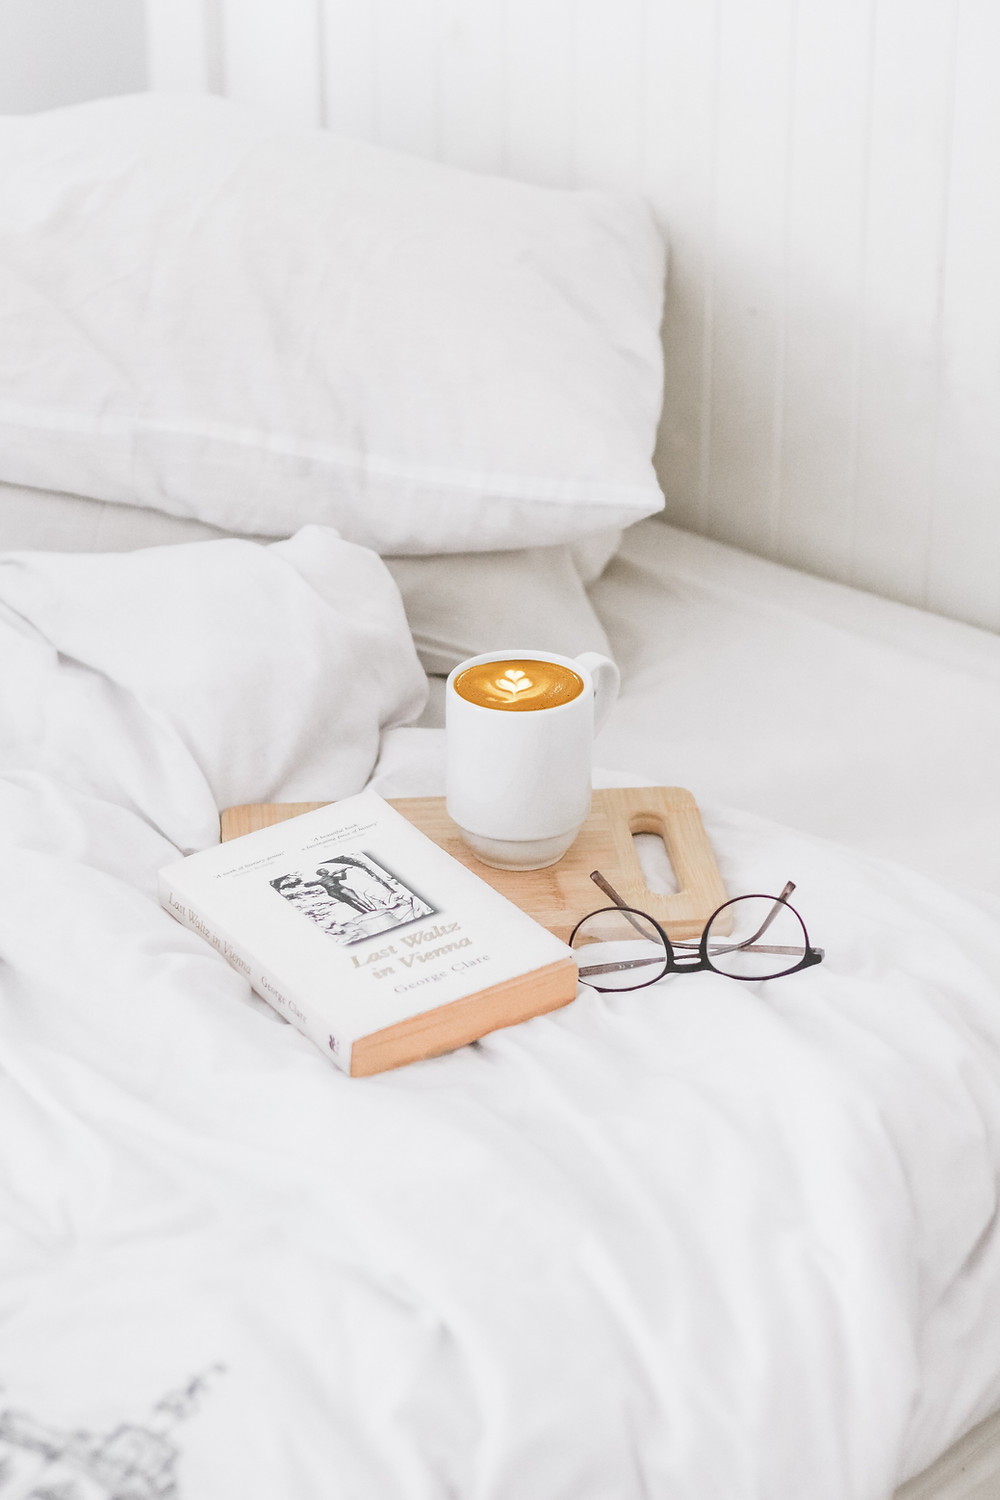 A coffee, glasses and a book lie on a bed which is made up with clean, white bedding